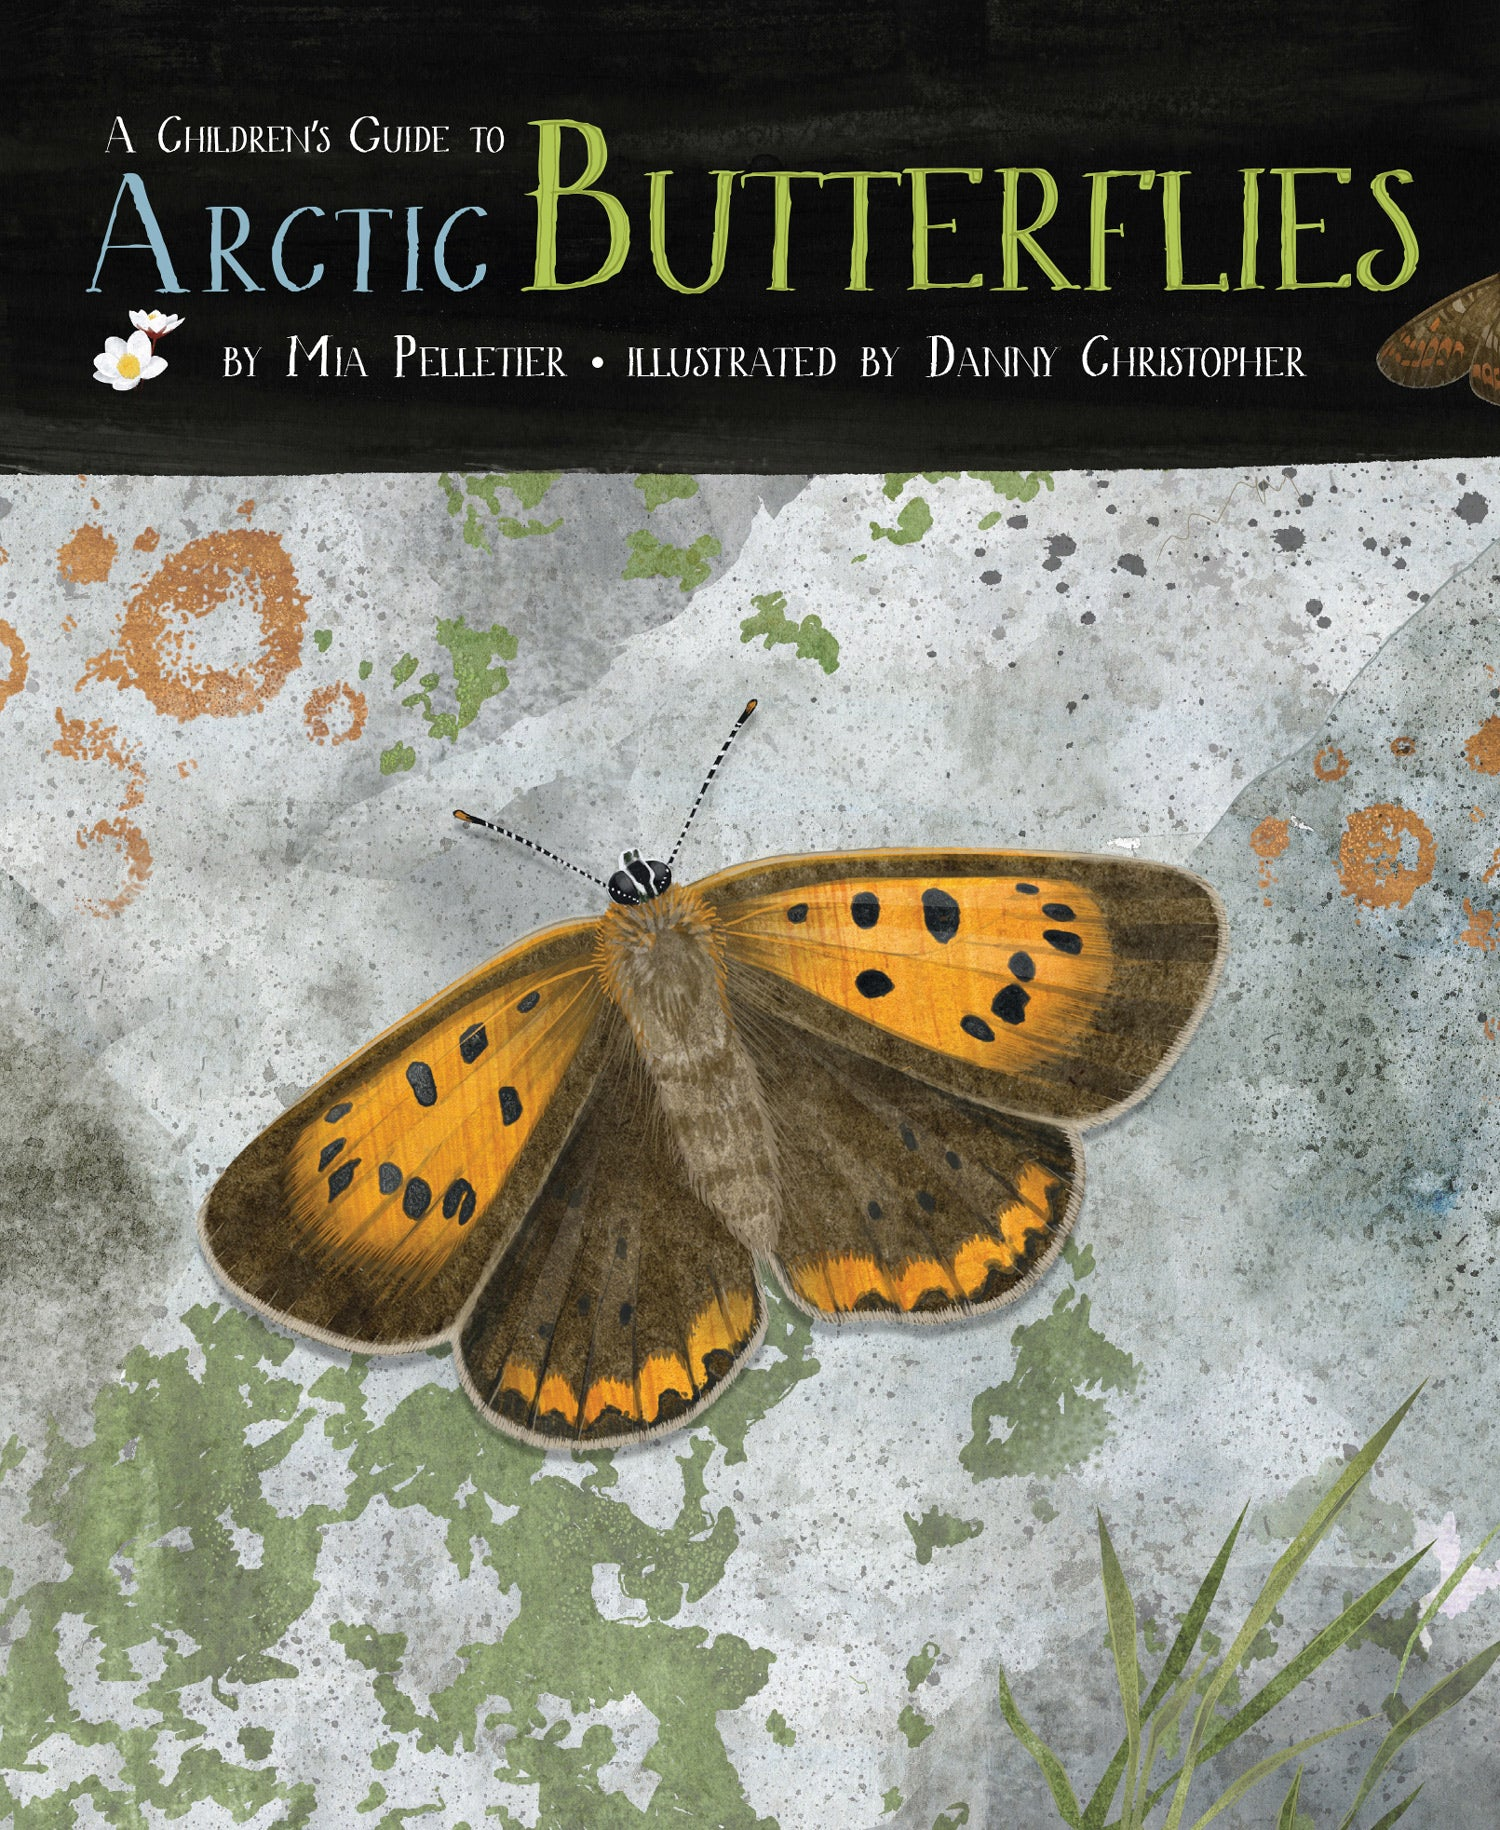 A Children's Guide to Arctic Butterflies